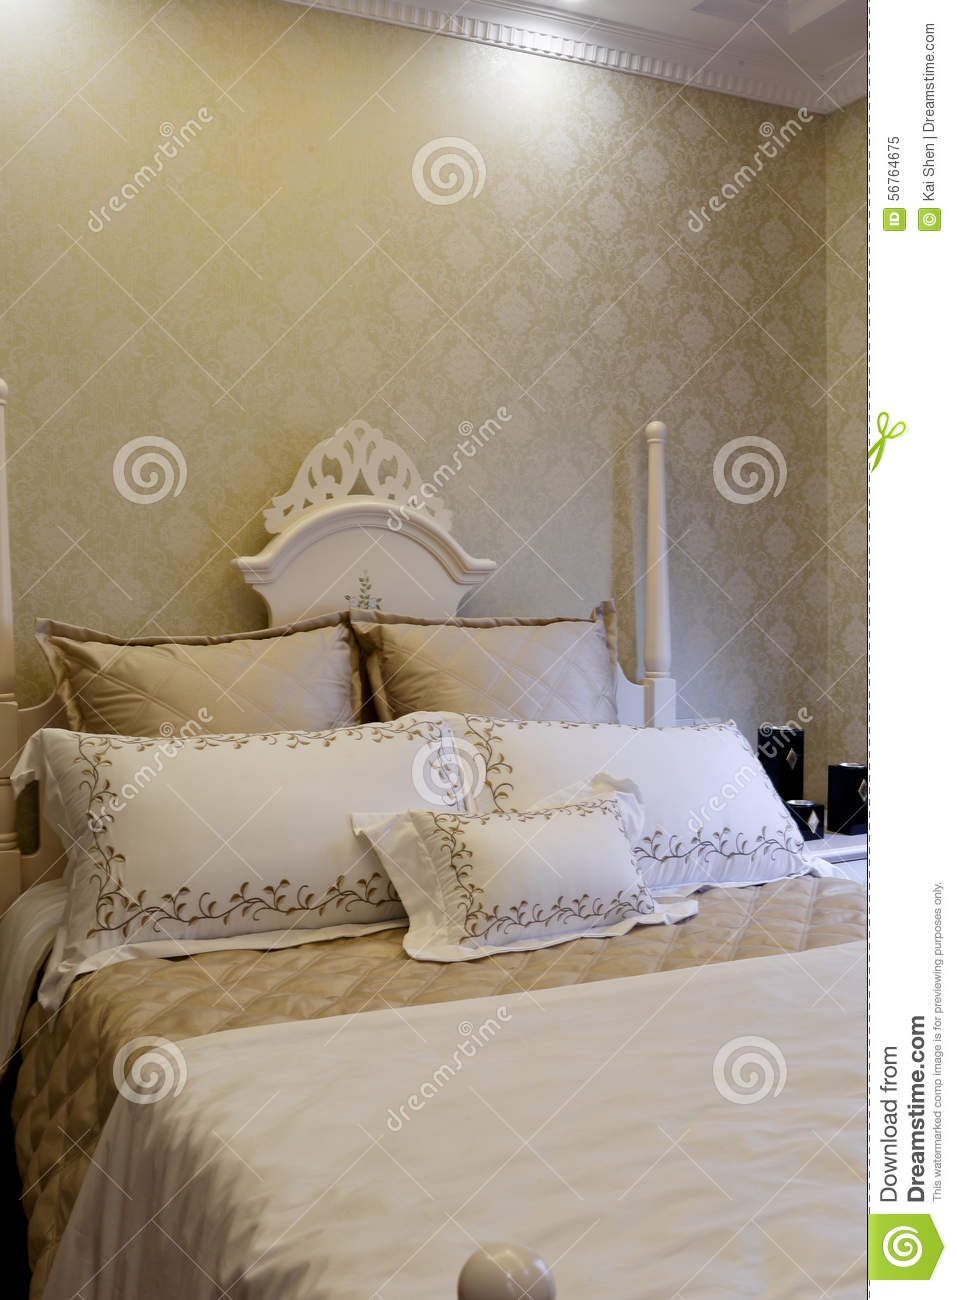 Simple Color And Decoration In The Bedroom Stock Image Image Of